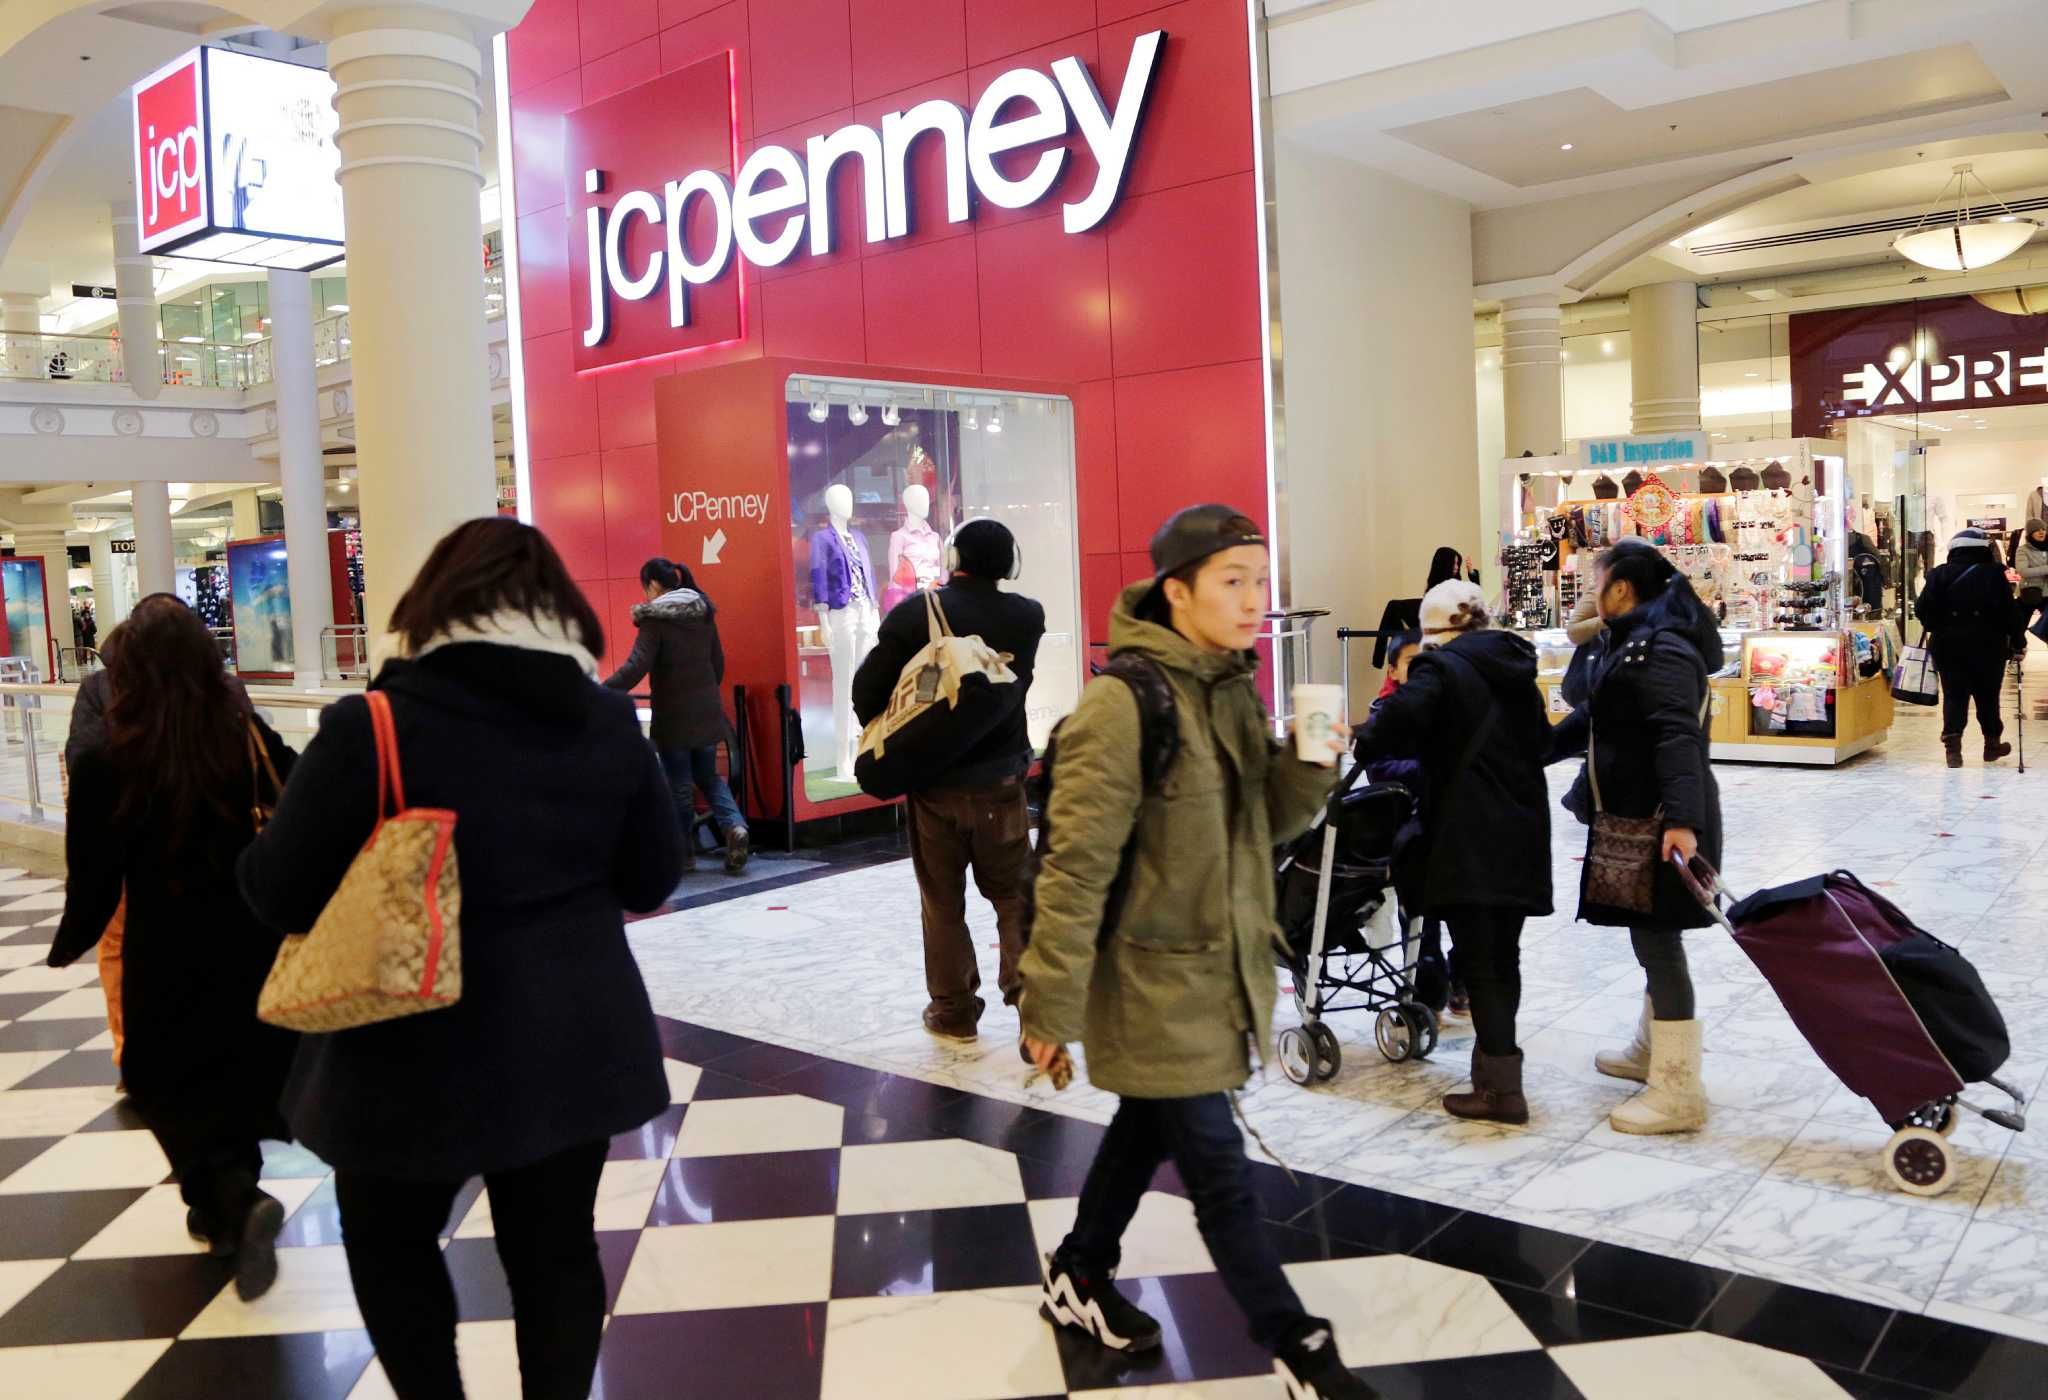 J.C. Penney CEO says some stores will close - San Antonio Express-News